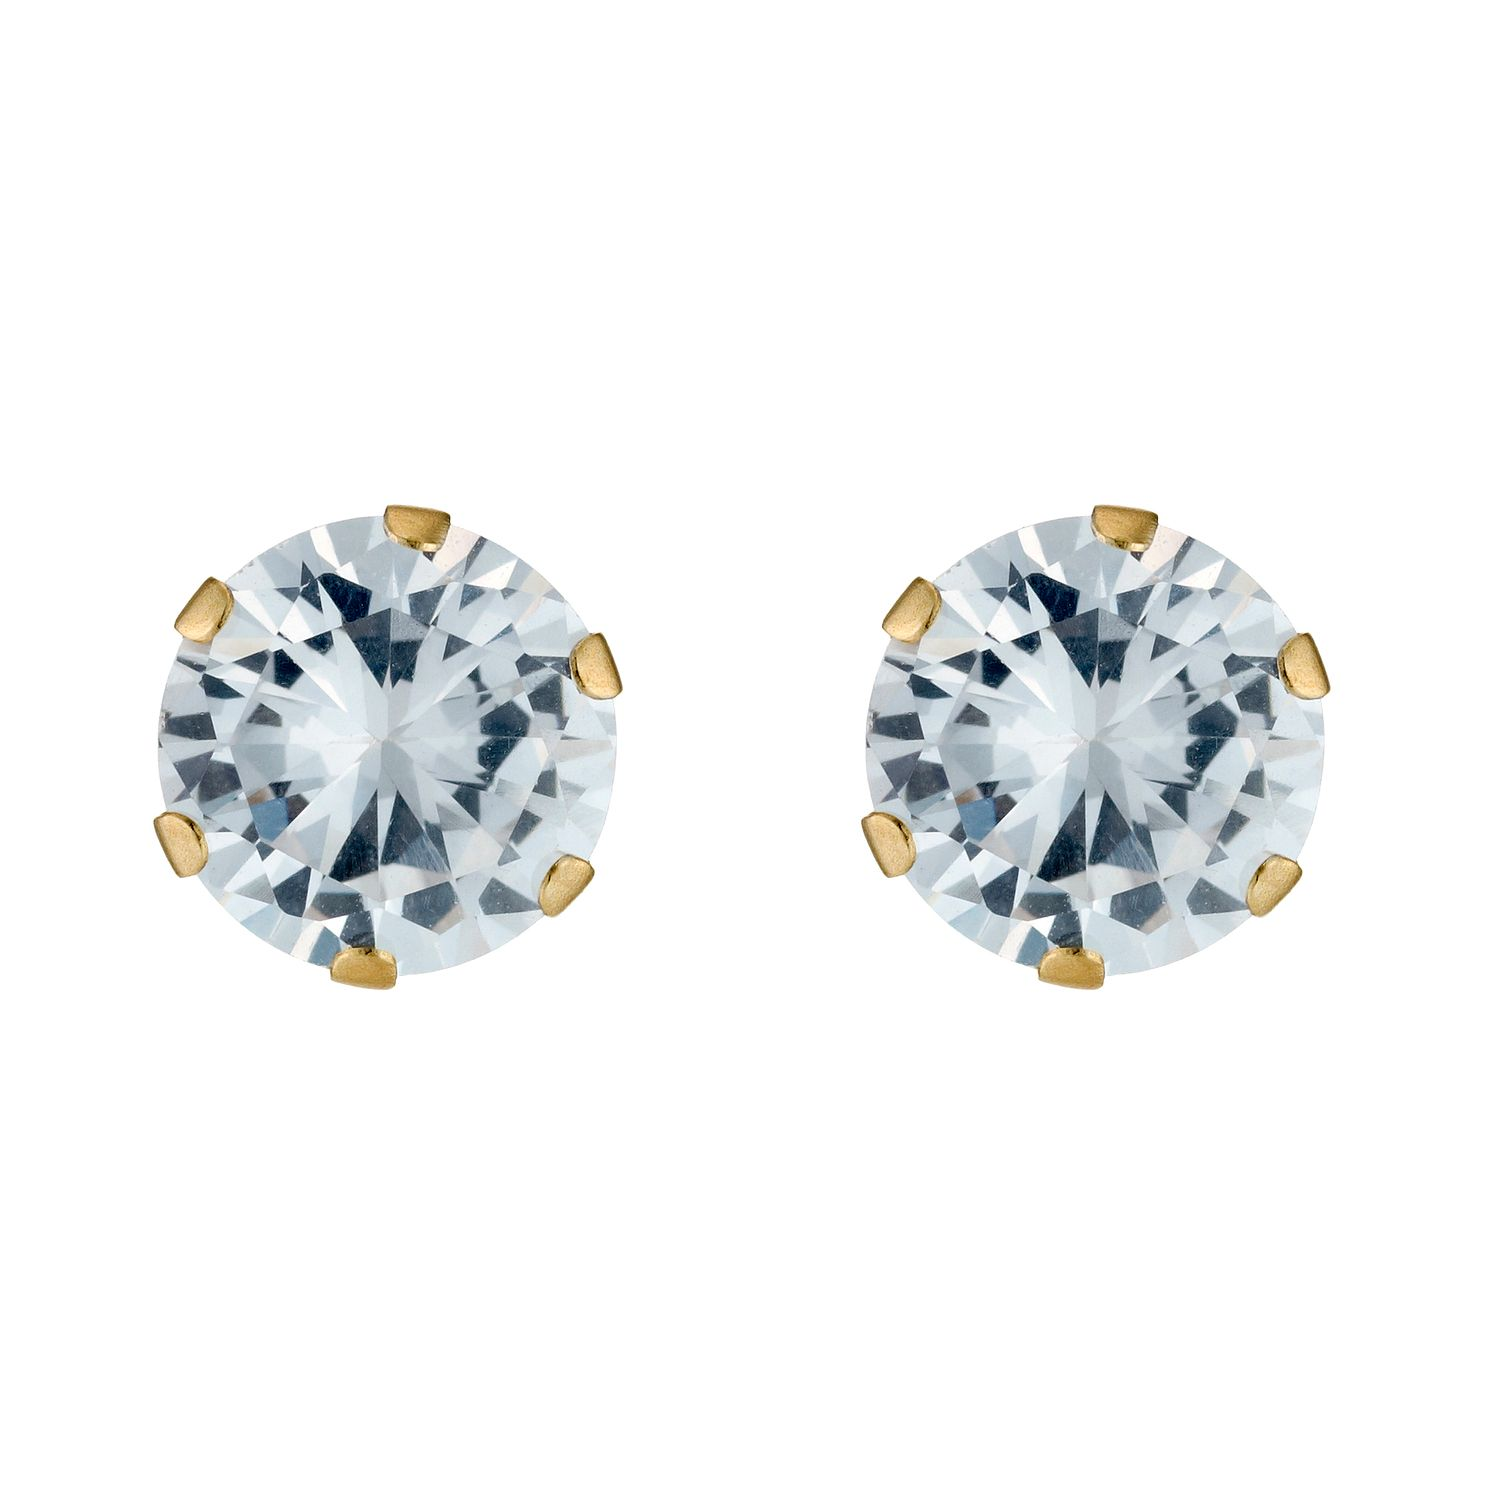 9ct Yellow Gold Cubic Zirconia 7mm Stud Earrings - Product number 3548880